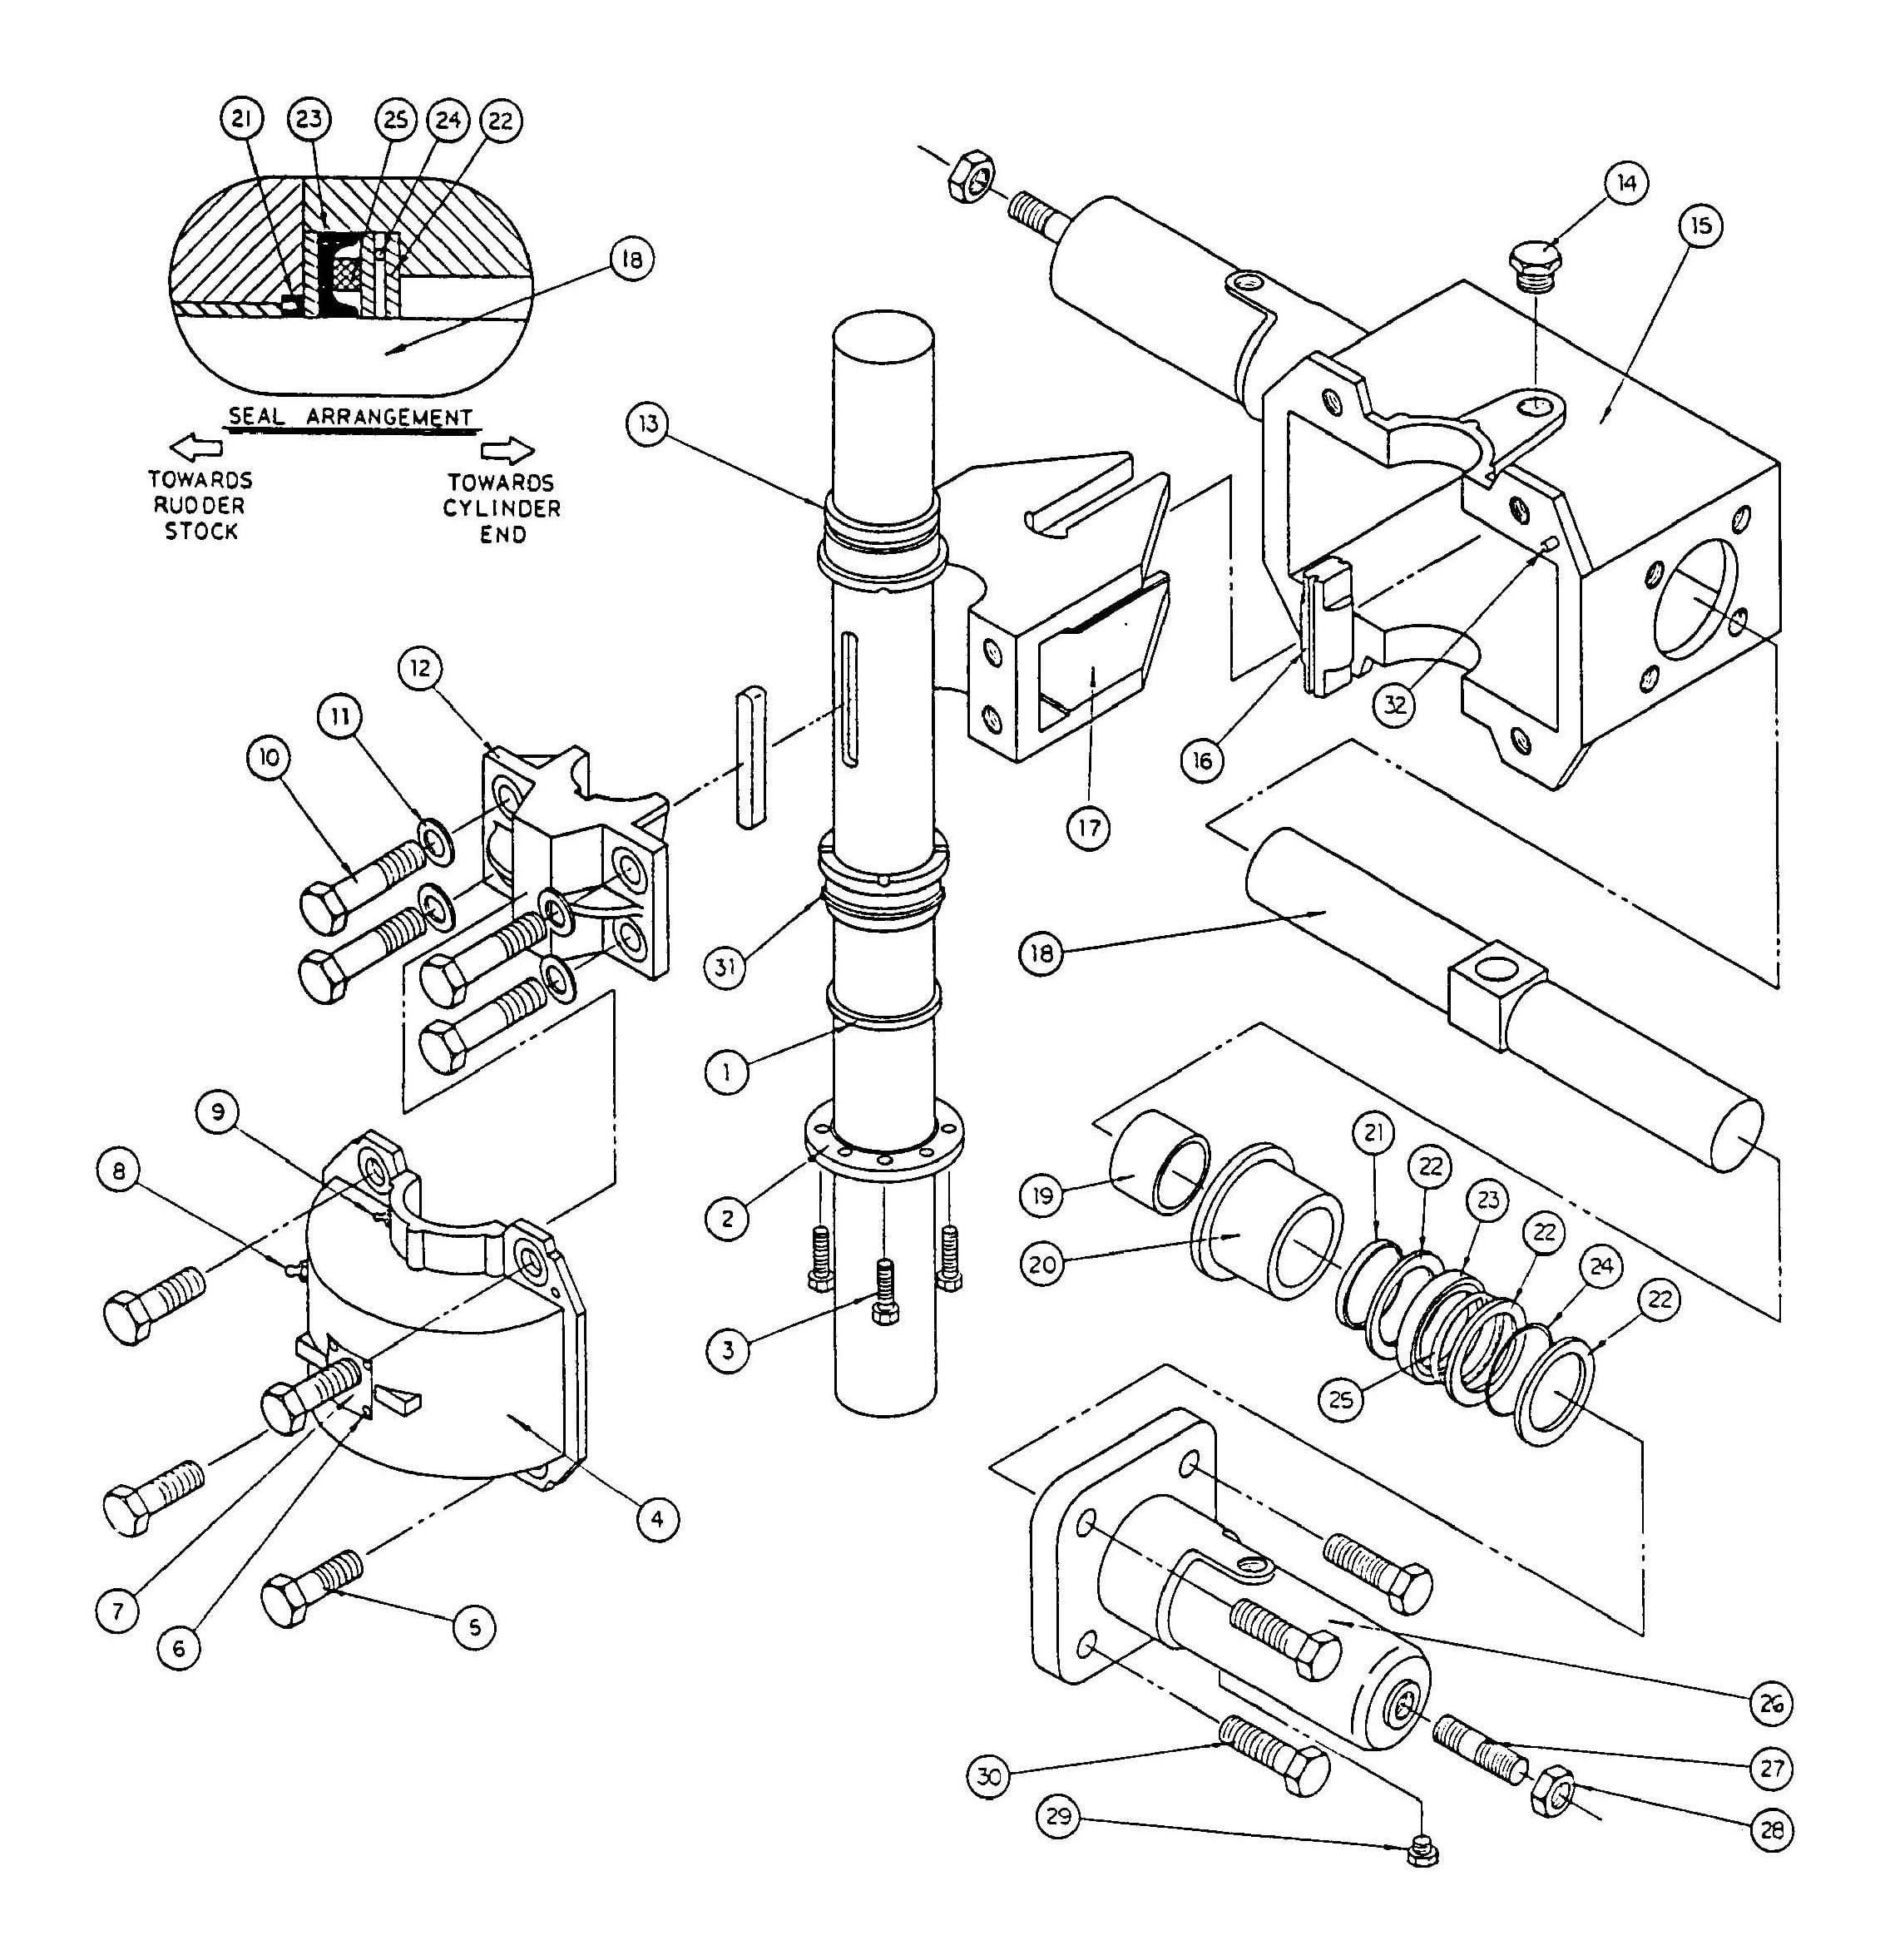 Model T10 and T11 Actuator Assembly Diagram